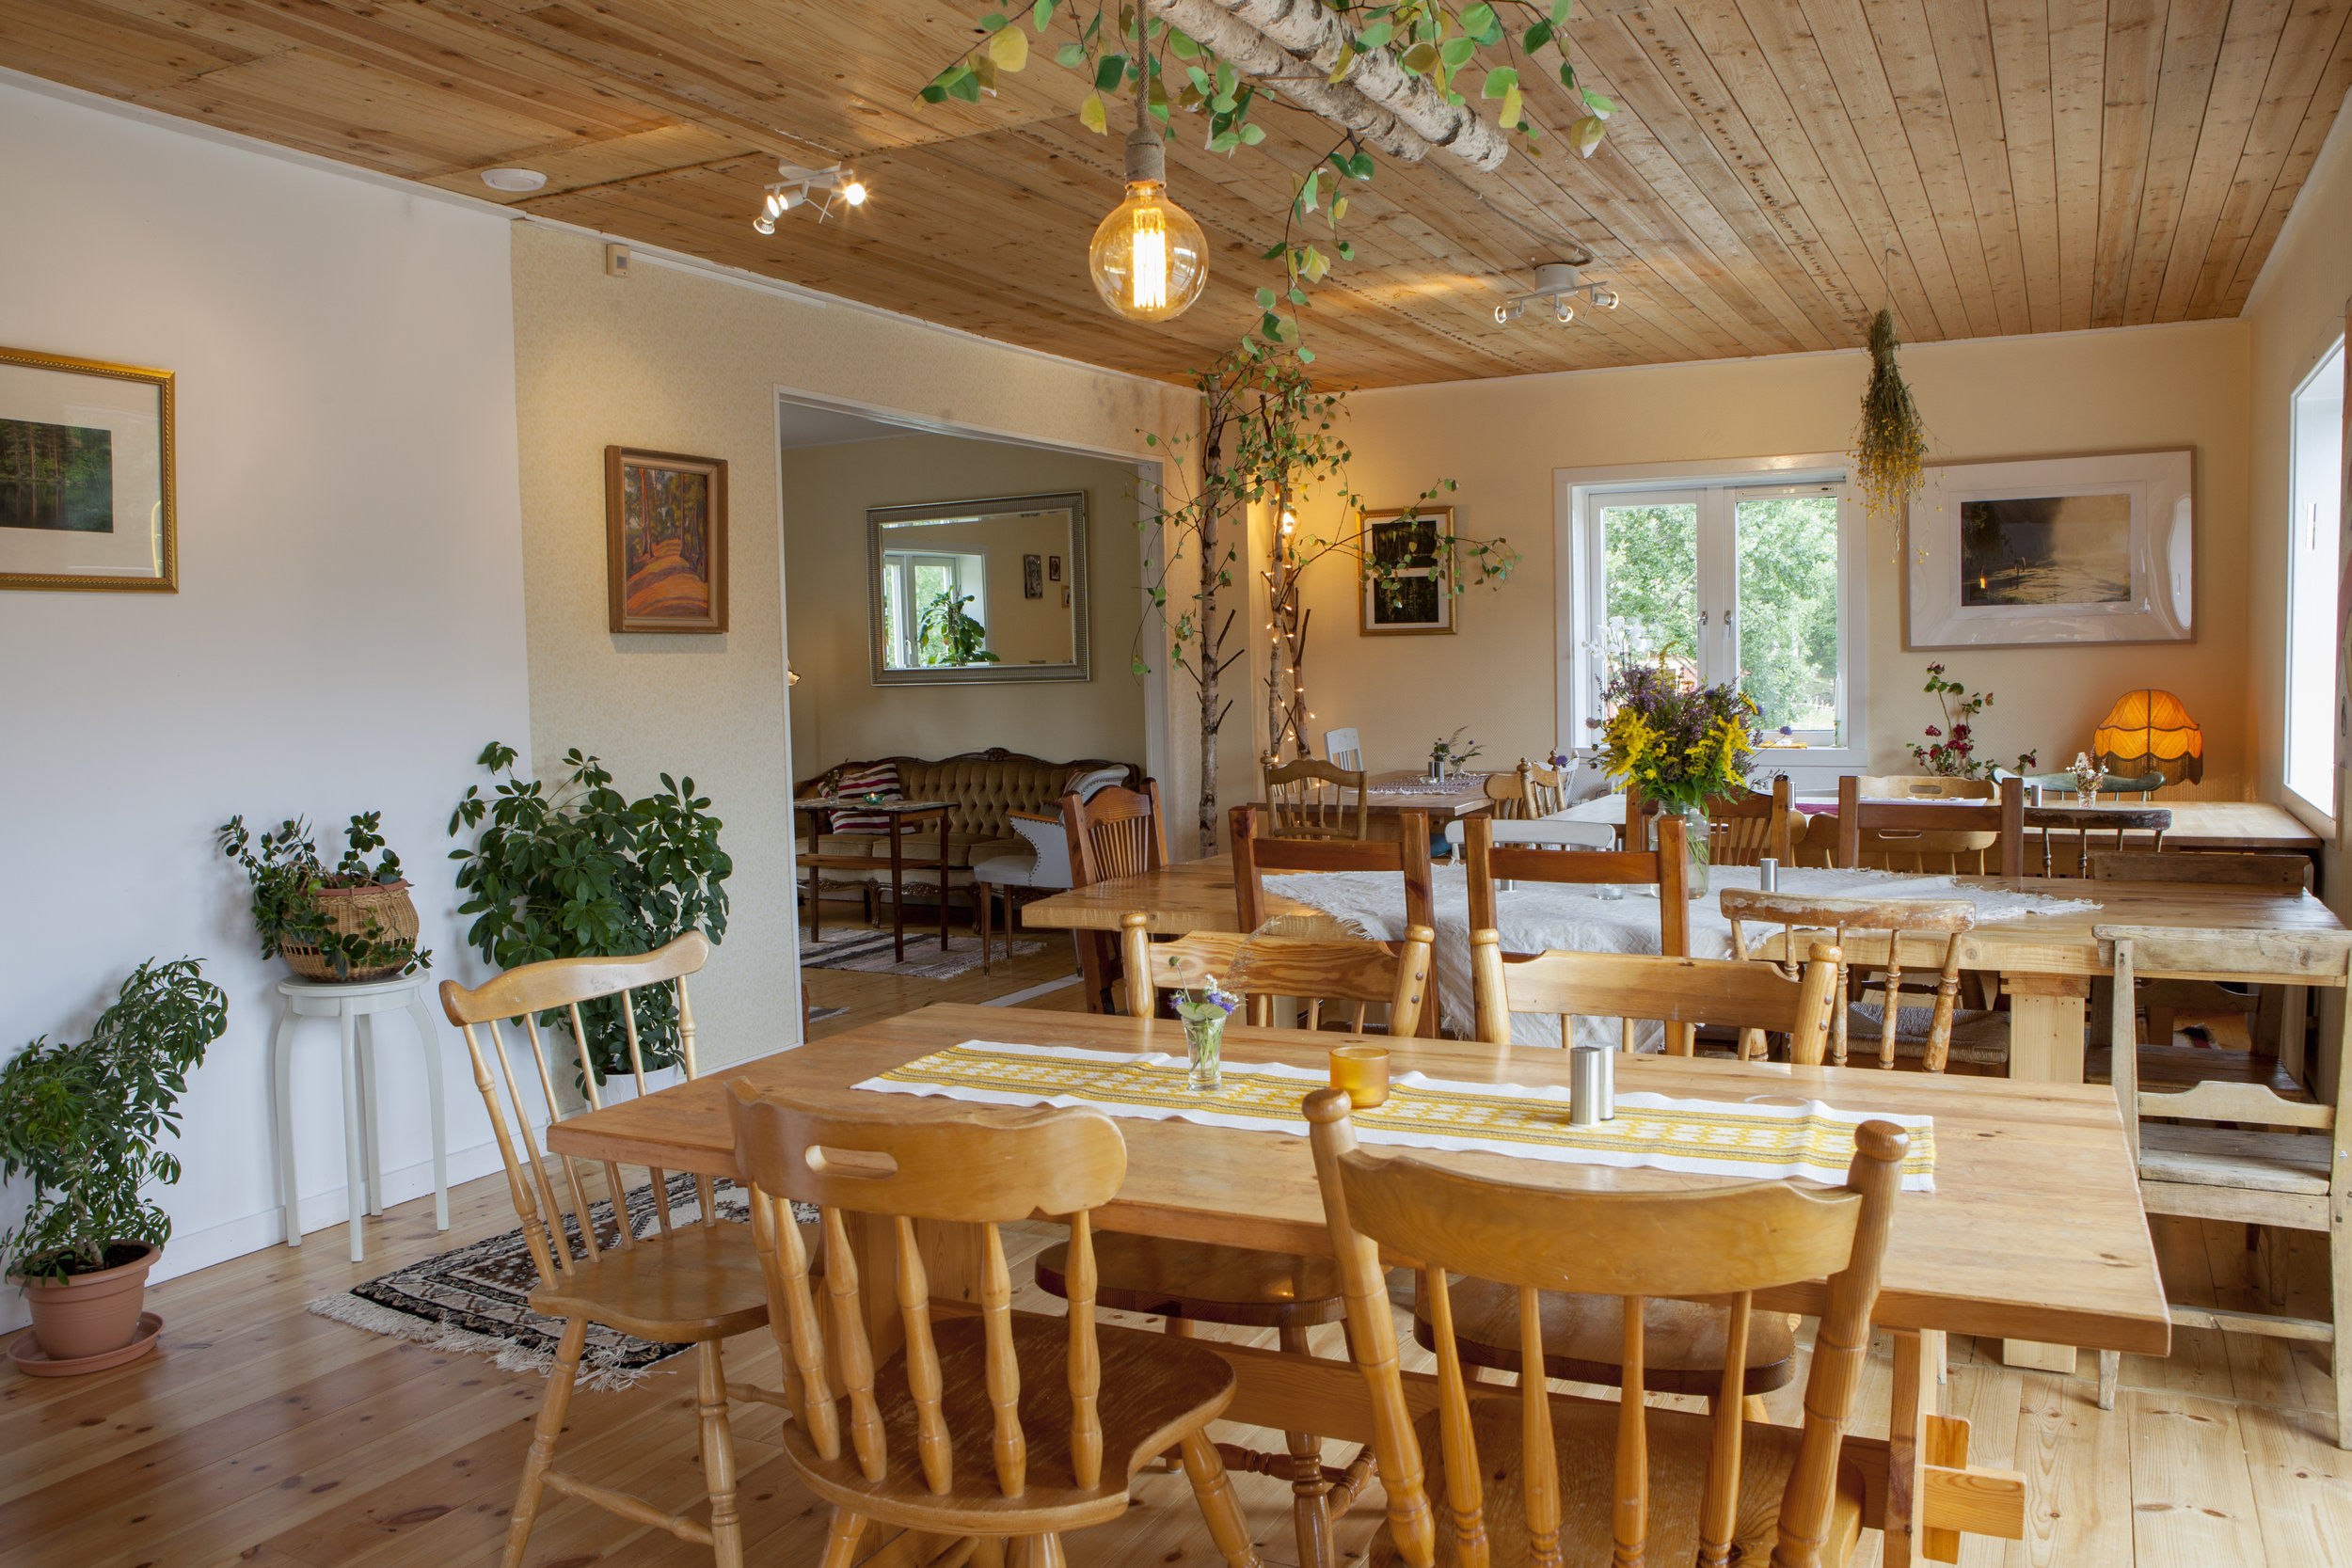 Our homely dining hall -